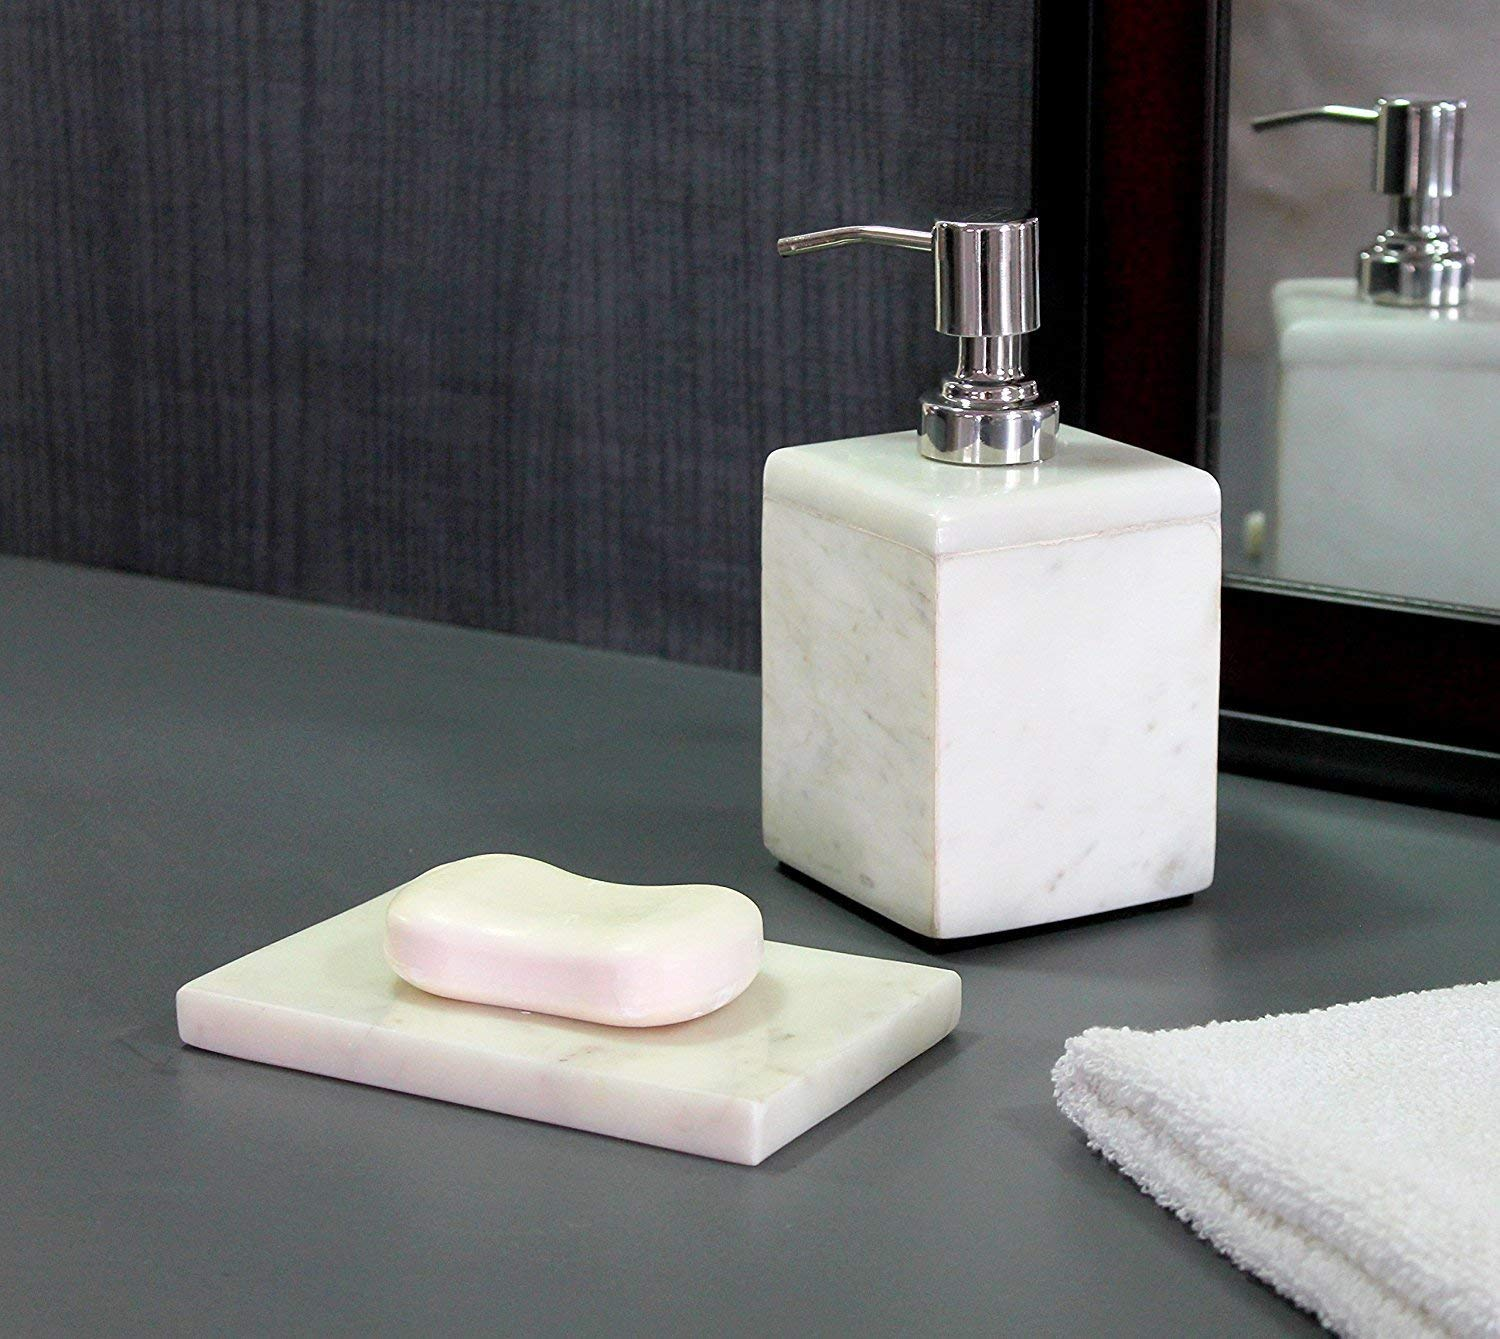 KLEO - Bathroom Accessory Set made from Natural Stone - Bath Accessories set includes Soap Dispenser, Toothbrush holder, Soap Dish (White - Set of 2) - KLEO brings Hand-crafted luxury to redefine your home decor. Add sheen and class to your bathroom with this artistic piece made out of Marble Stone in White color. This Bath Set consists of a Soap Dispenser, and Soap case, all hand crafted and crafted in neutral colors to suit every bath décor KLEO Soap Dispensers are fitted With High Quality Stainless Steel Pumps. Because of Soap and water hardness, Steel pumps *may* get stained over time. - bathroom-accessory-sets, bathroom-accessories, bathroom - 71lvzVffp8L -